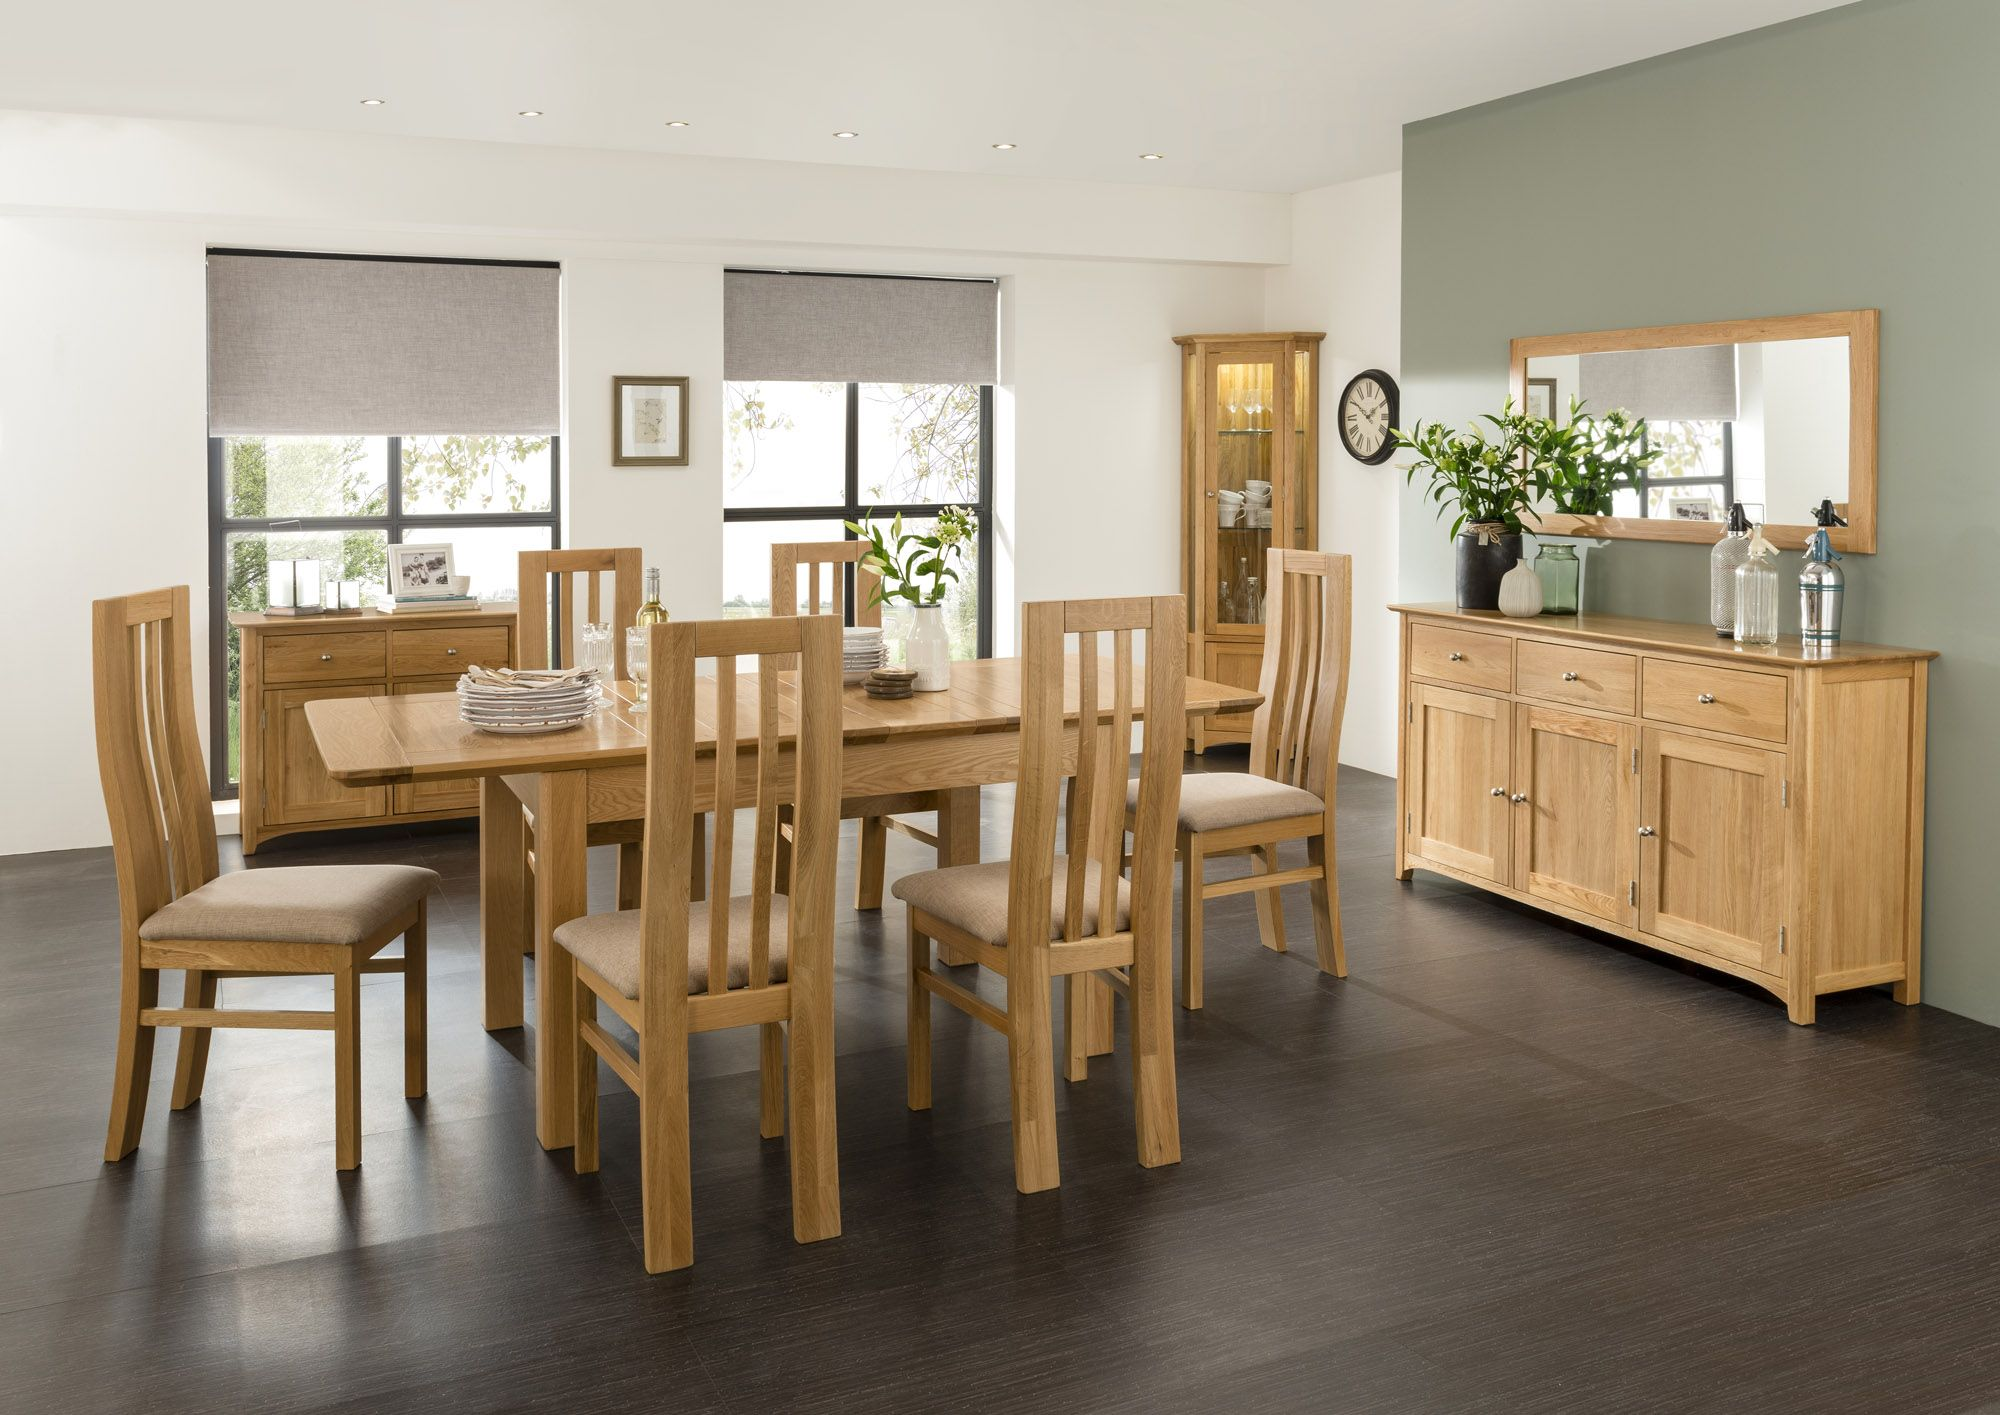 Cookes Collection Aruba dining set #dining #table #chairs #oak #roomscene #getthelook http://www.cookesfurniture.co.uk/complete-the-look/aruba-look/c180